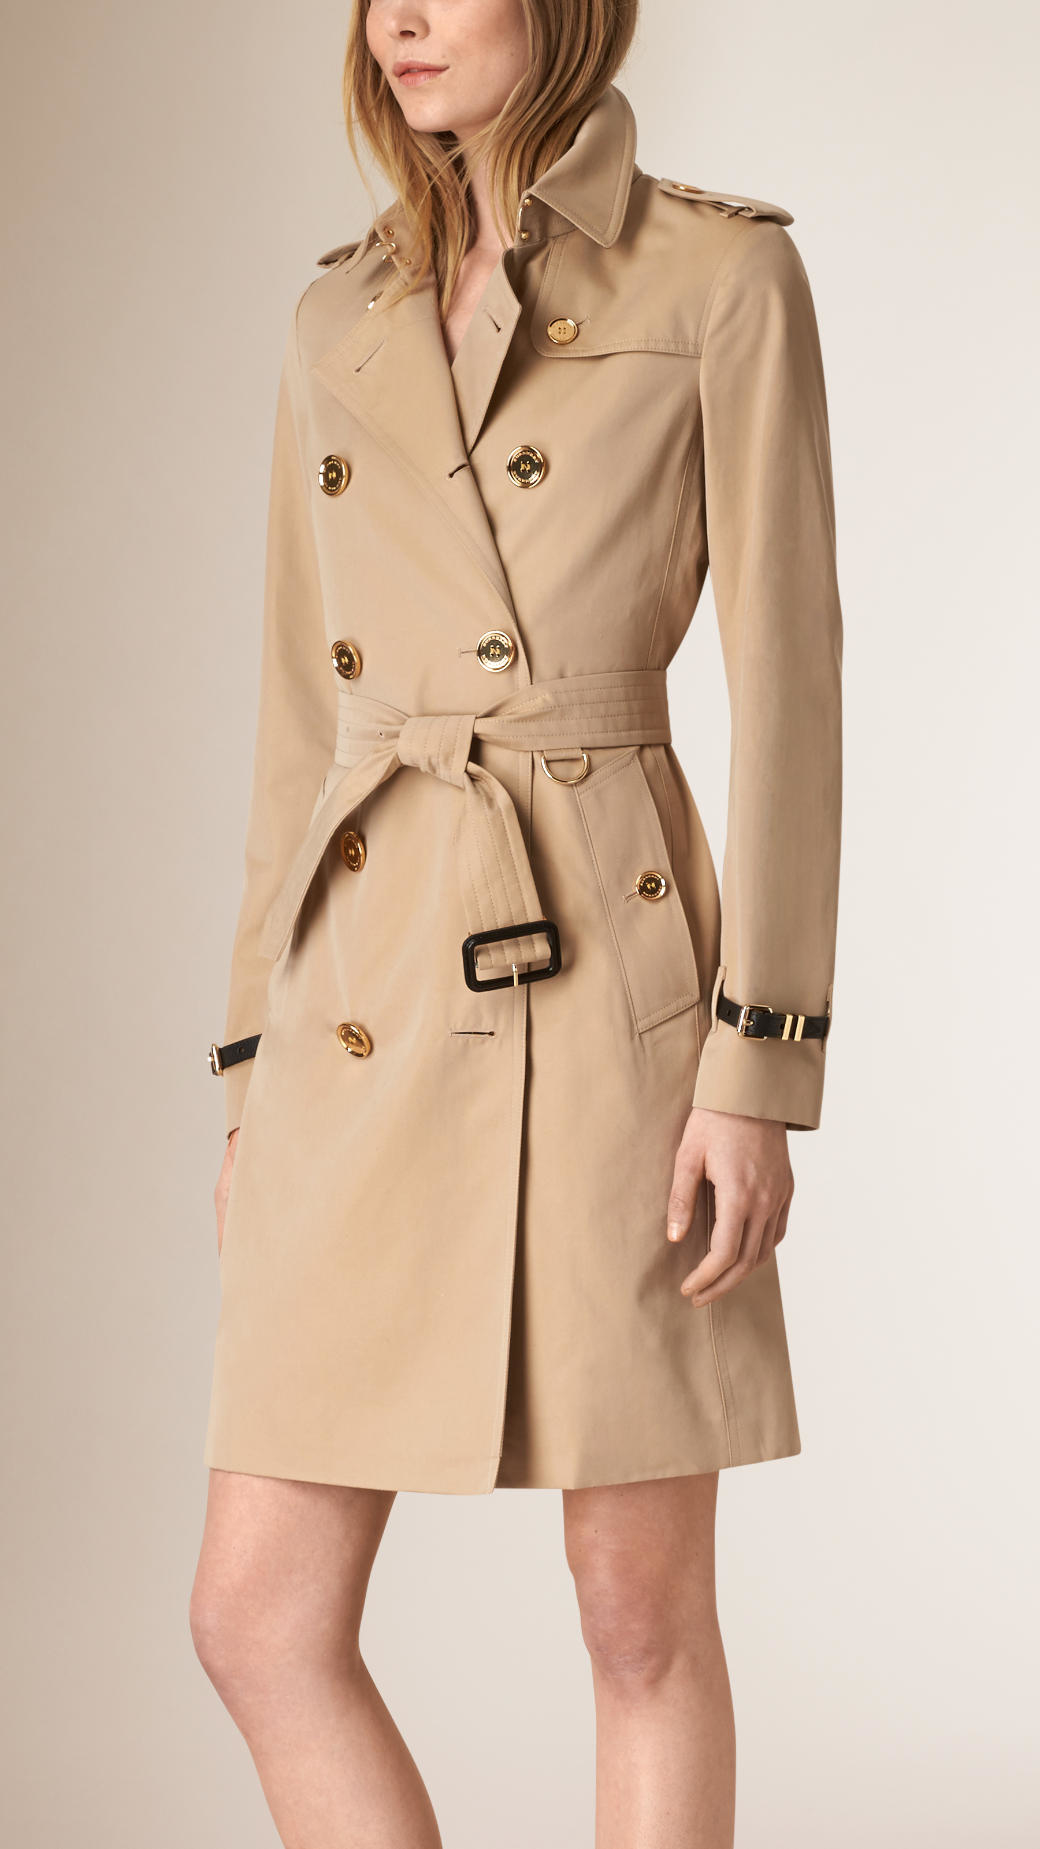 a7bde29f5d16 Lyst - Burberry Metal Button Detail Cotton Gabardine Trench Coat in ...